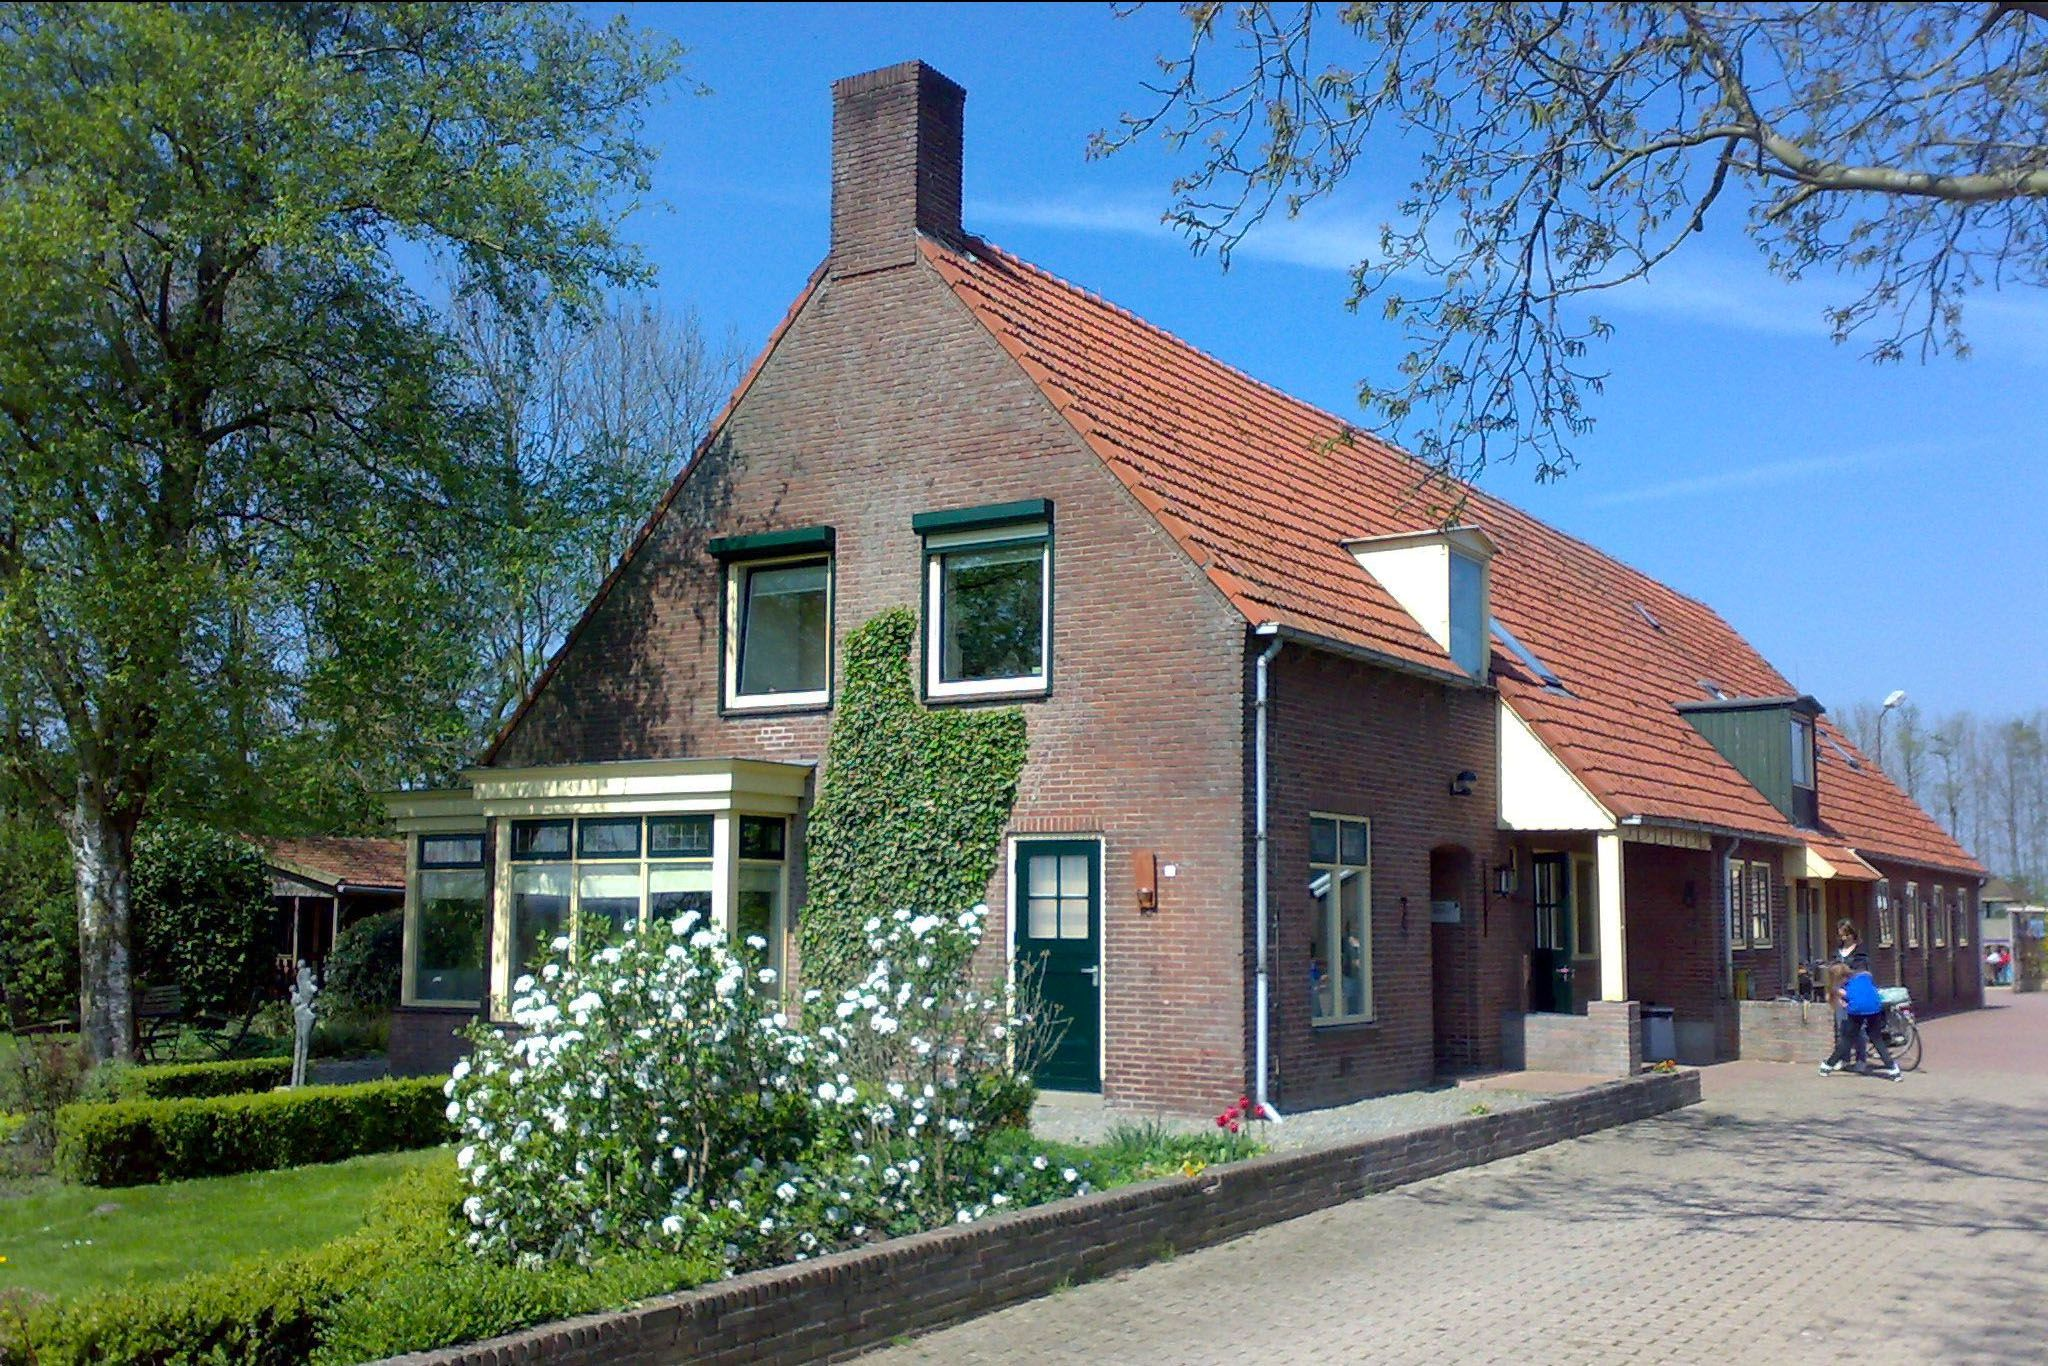 Group Accommodation In Baarle Nassau North Brabant 10 Guests